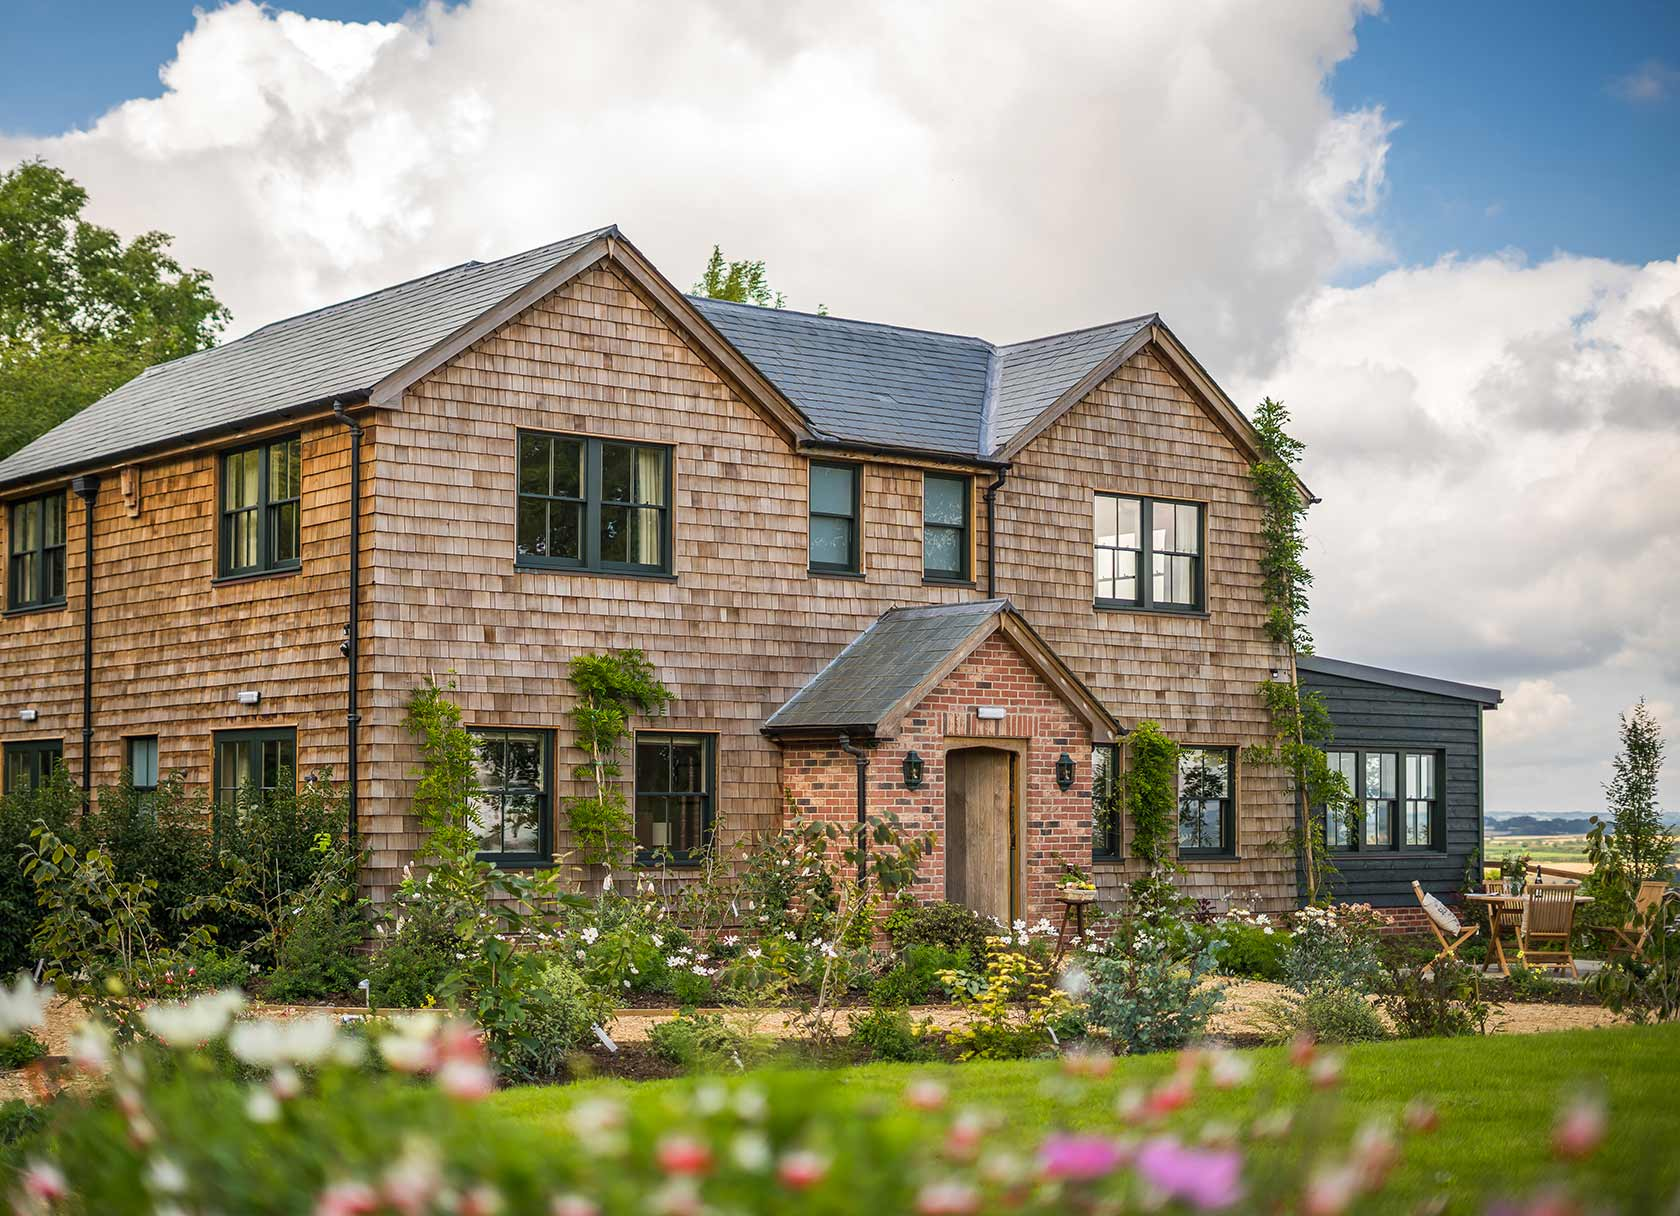 Outside of Hillside Cottage - A Luxury Guest House Rental in England